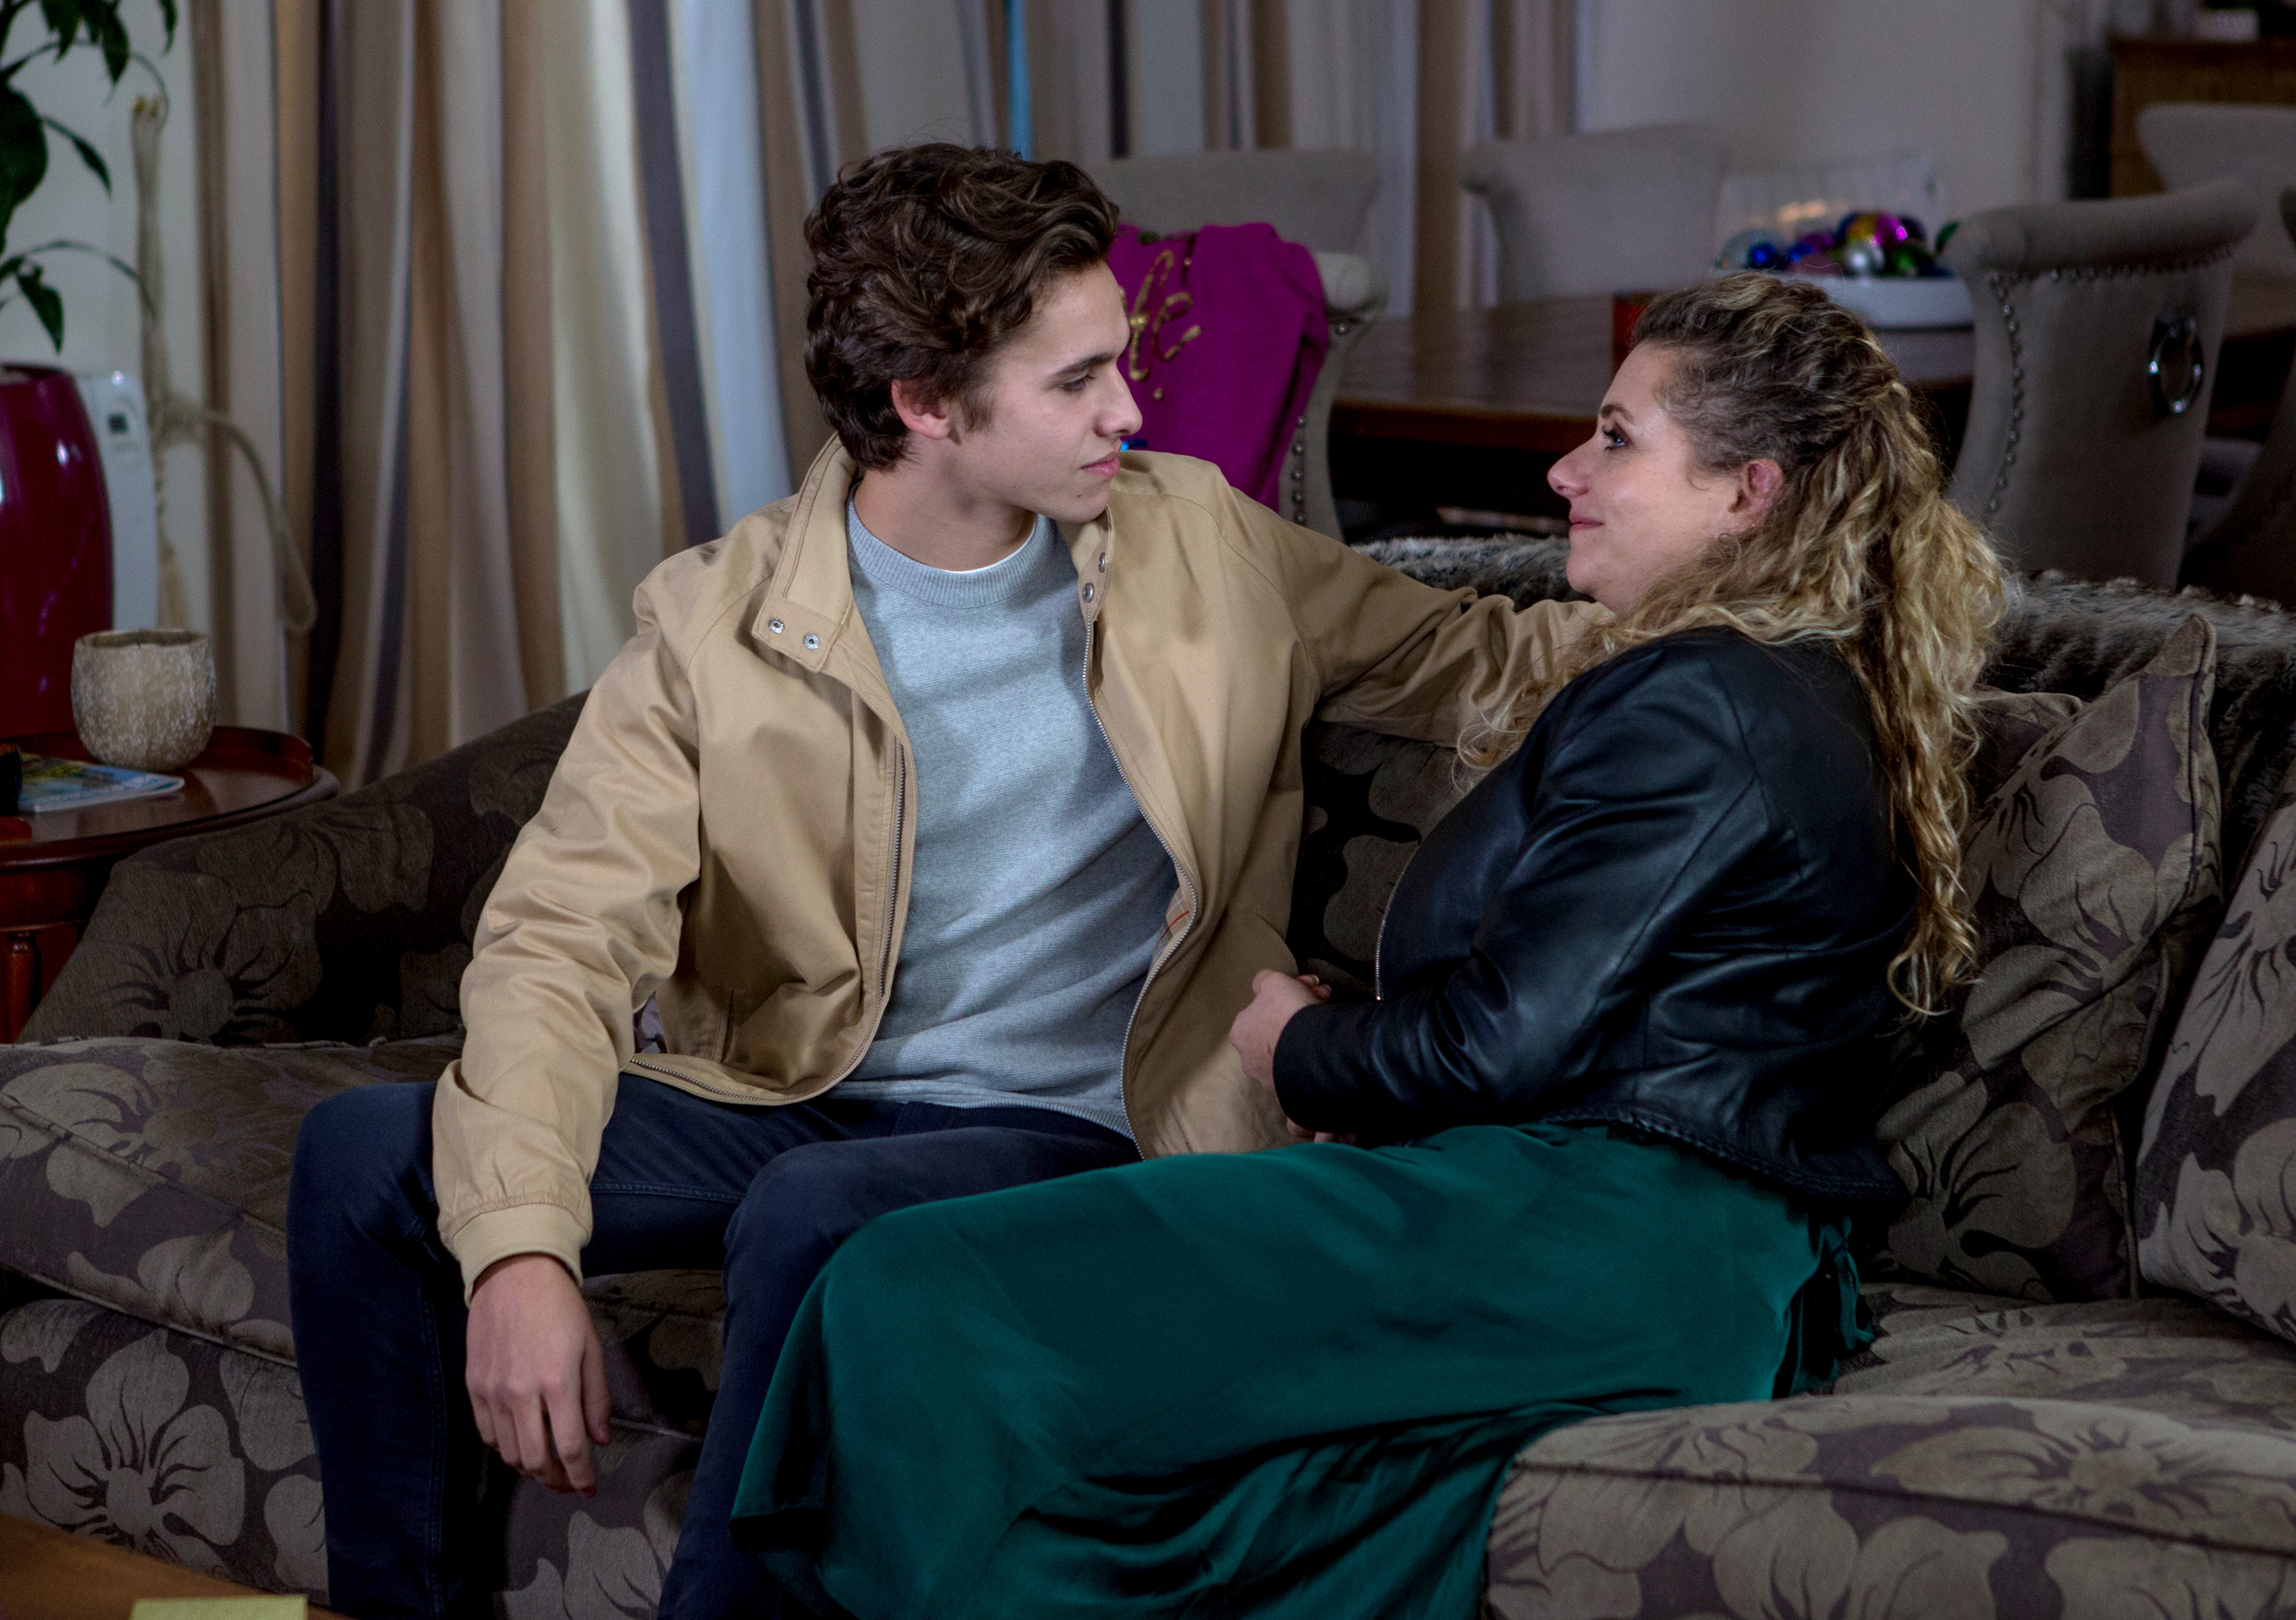 Emmerdale spoilers: Maya Stepney convinces Jacob Gallagher to use Liv Flaherty as a cover for their illegal affair